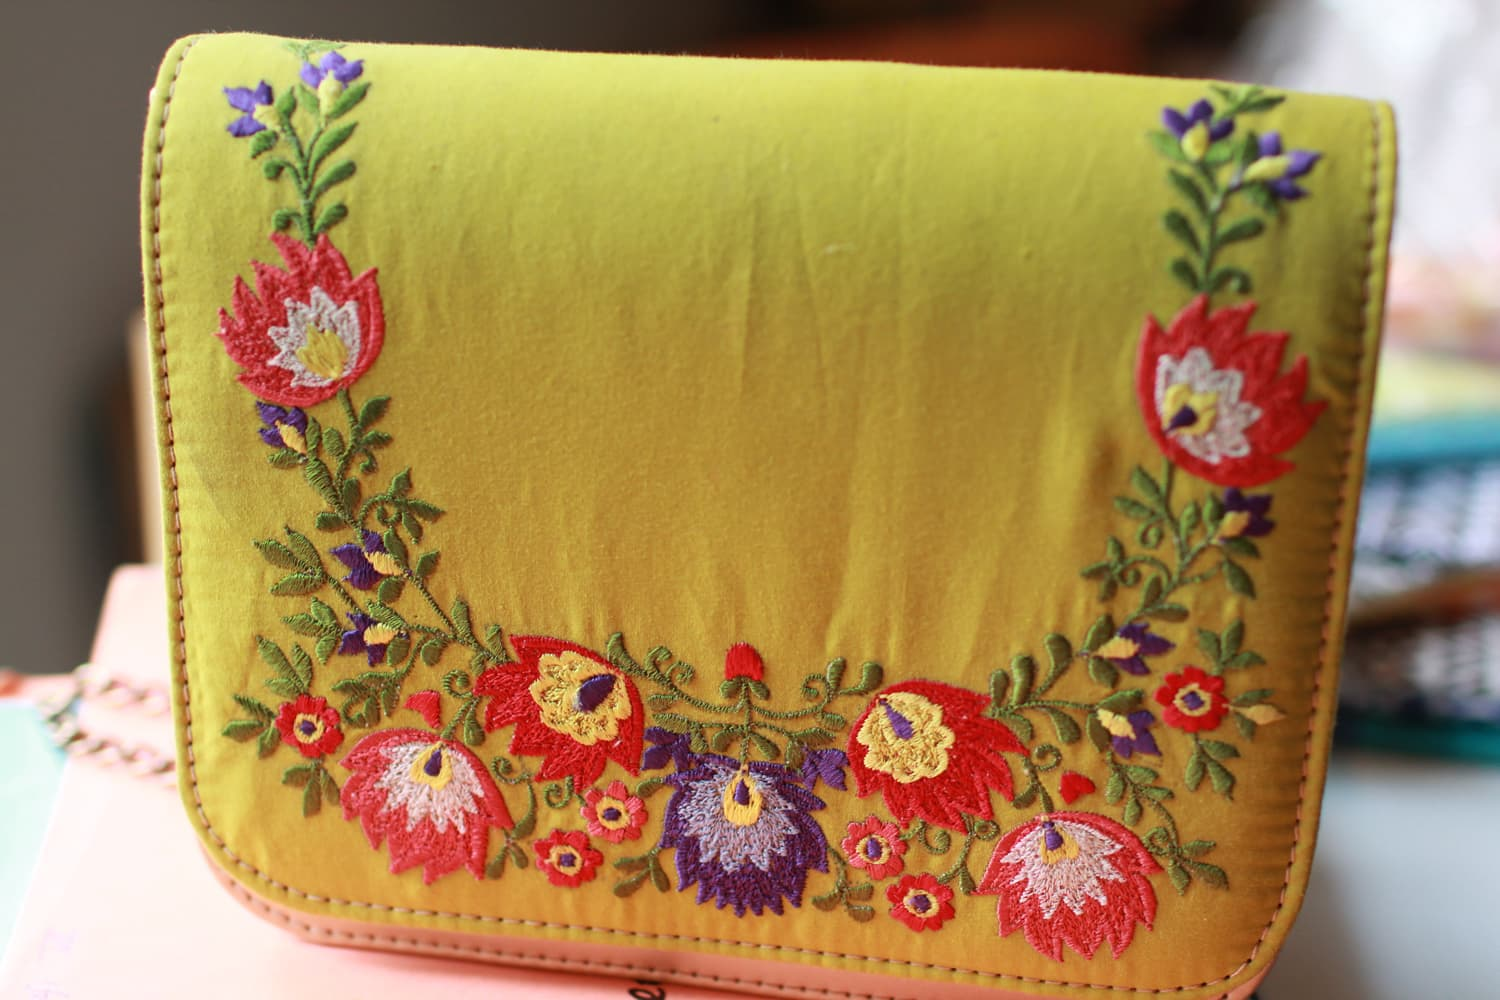 An embroidered bag made by the team.